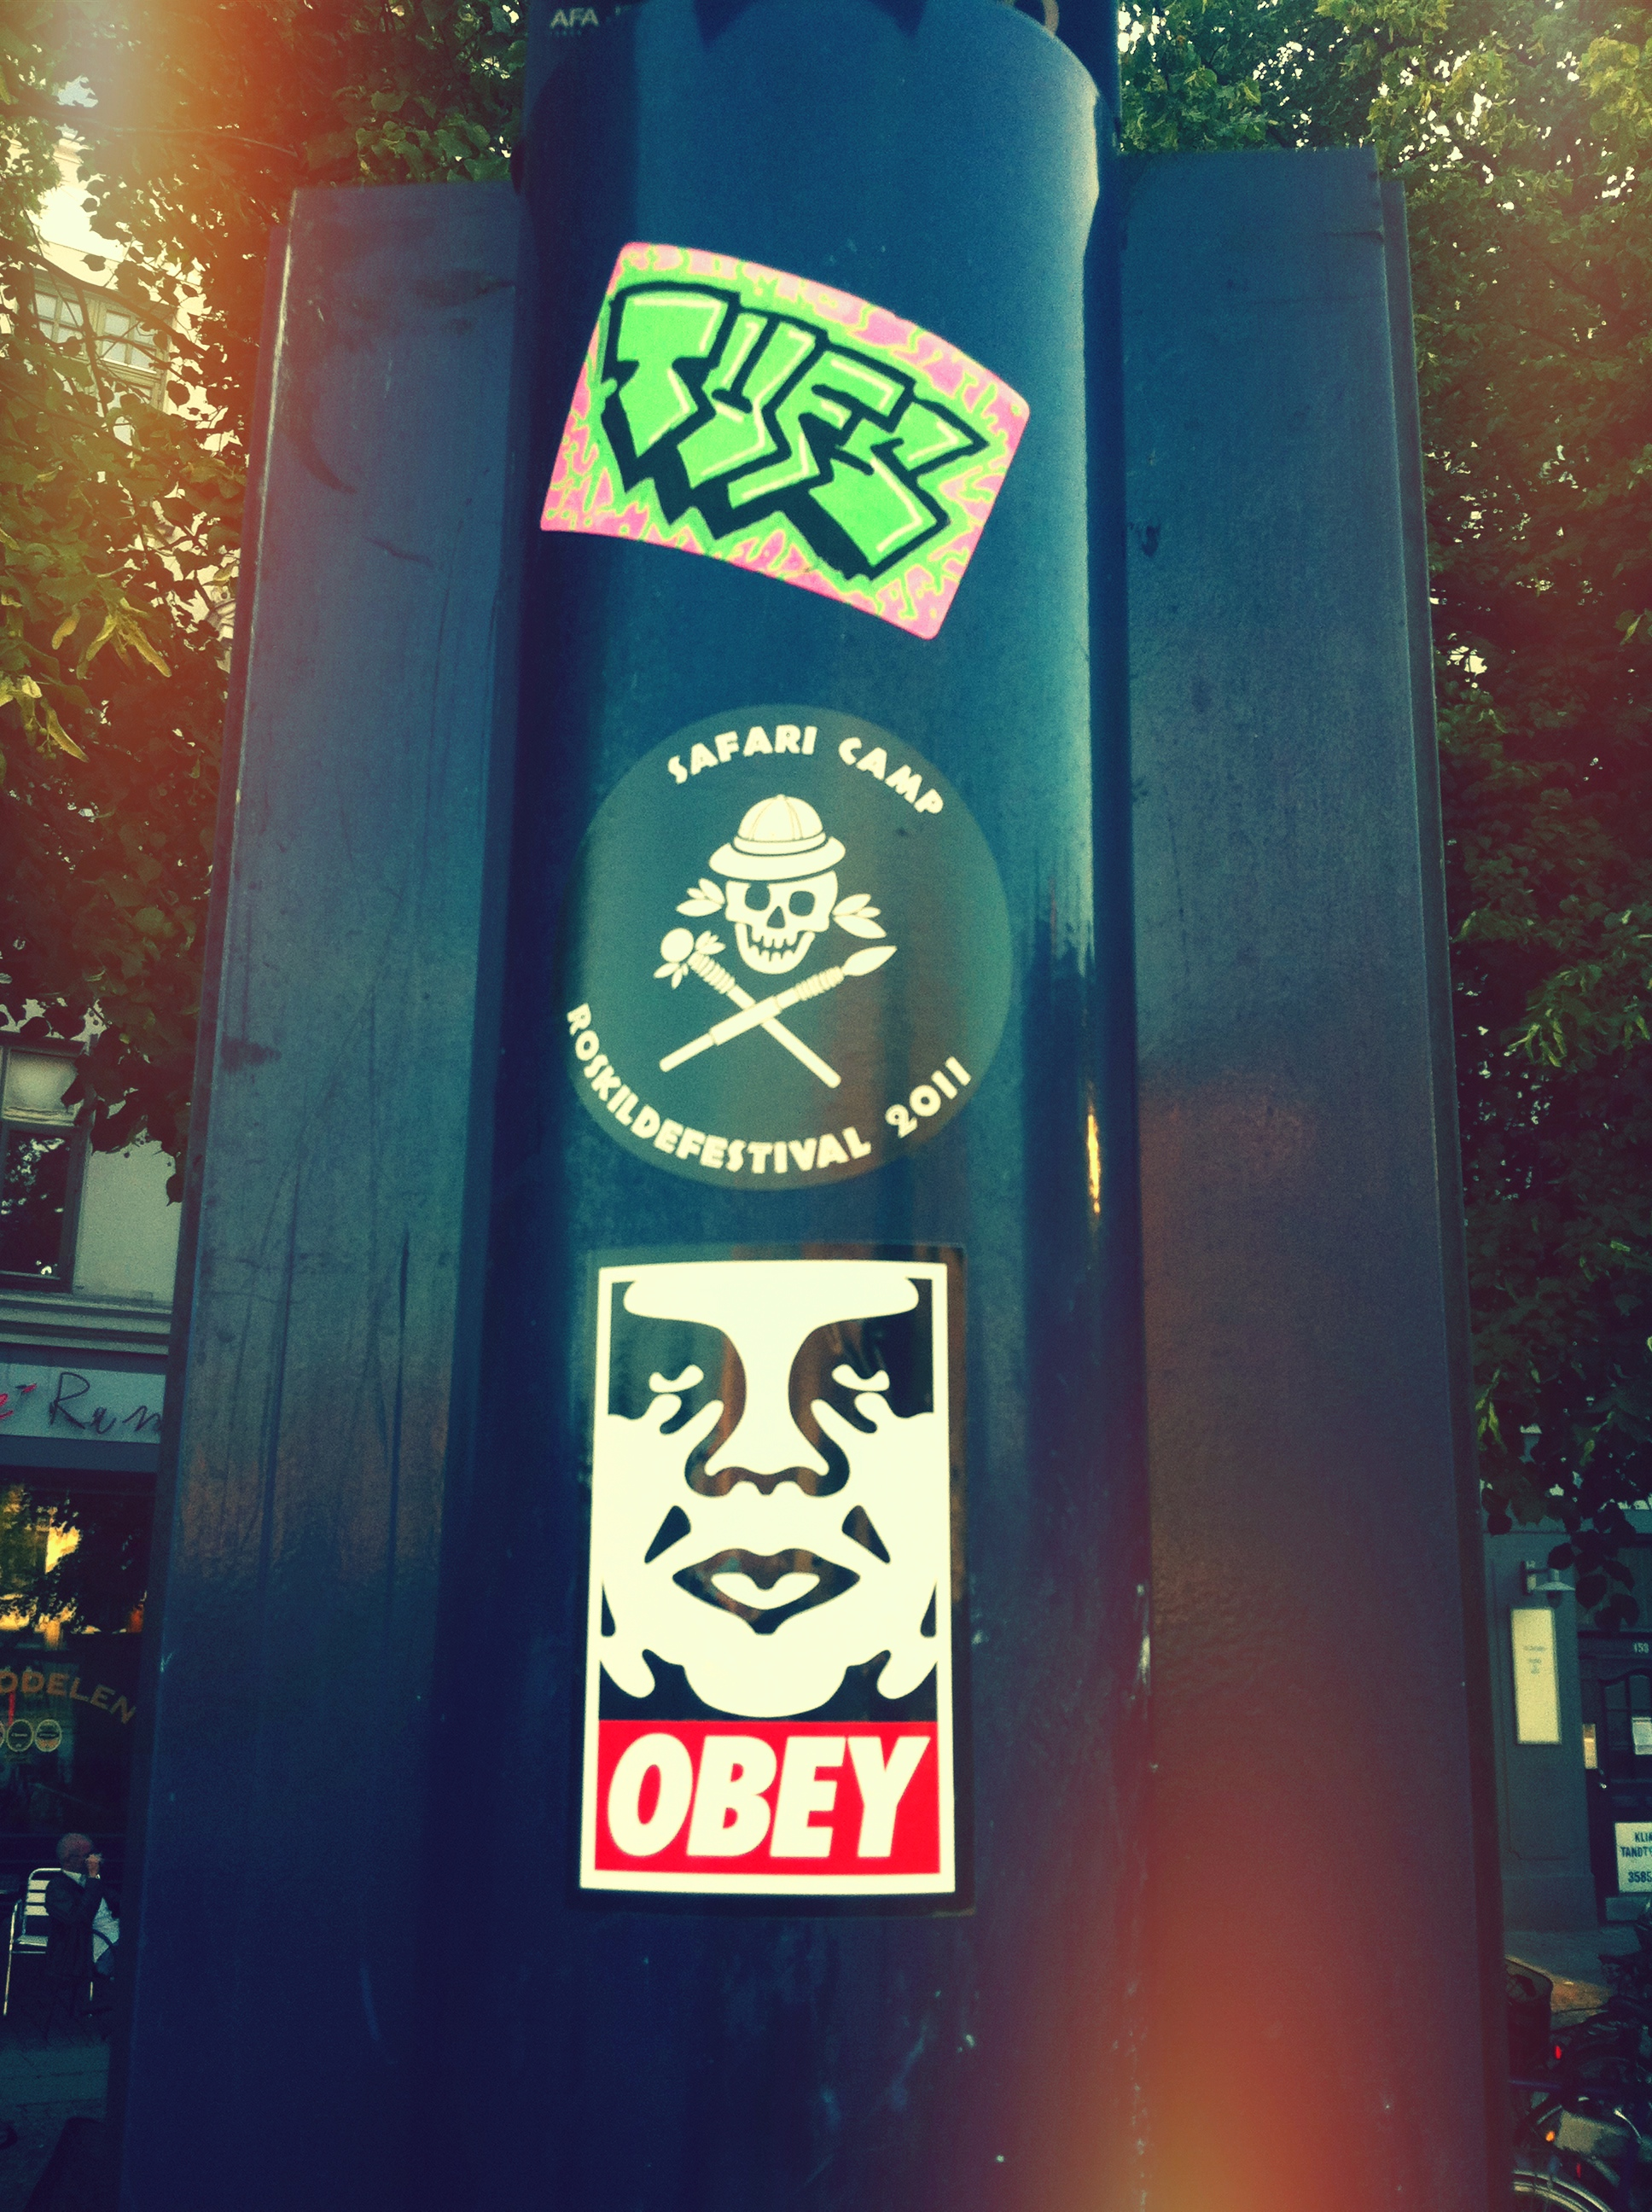 OBEY, Shepard fairey sticker copenhagen